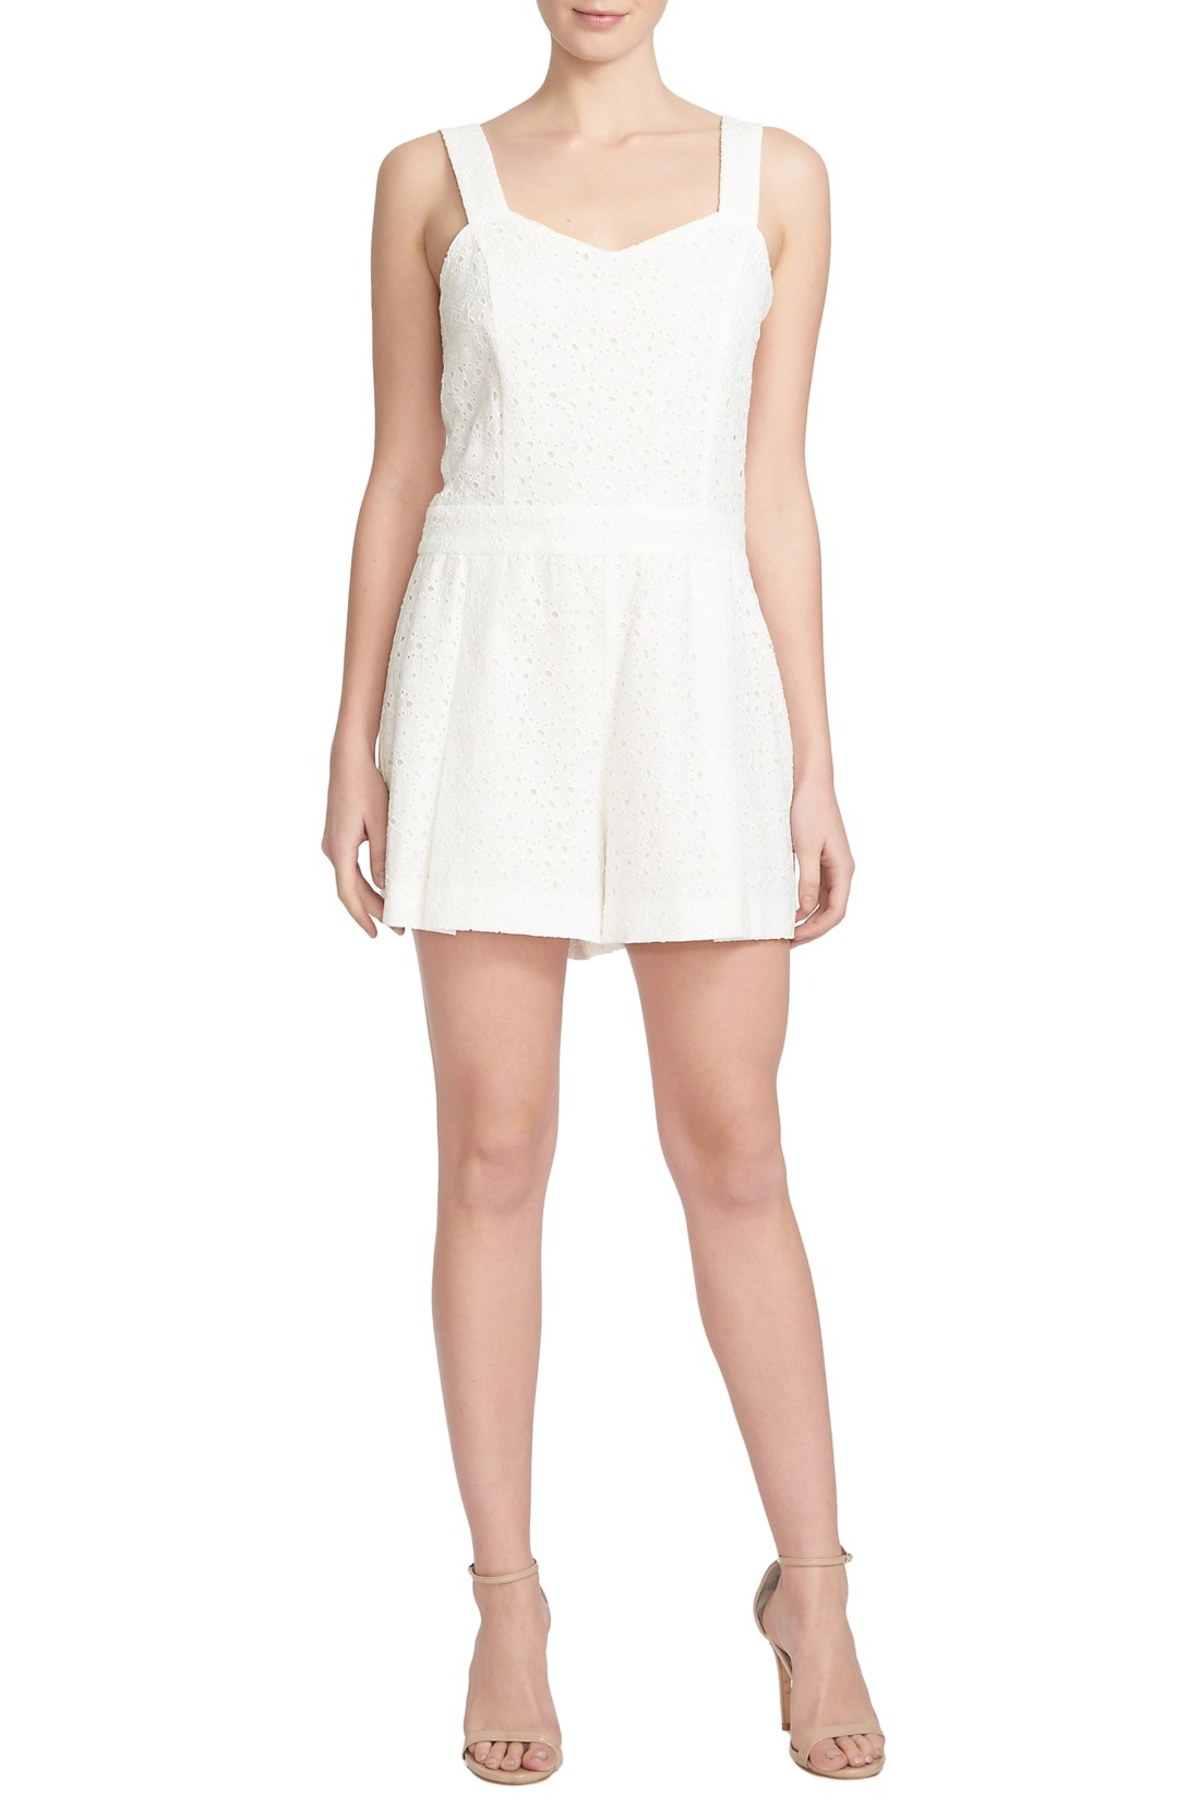 c42342bbe98 Lyst - 1.STATE Eyelet Romper in White